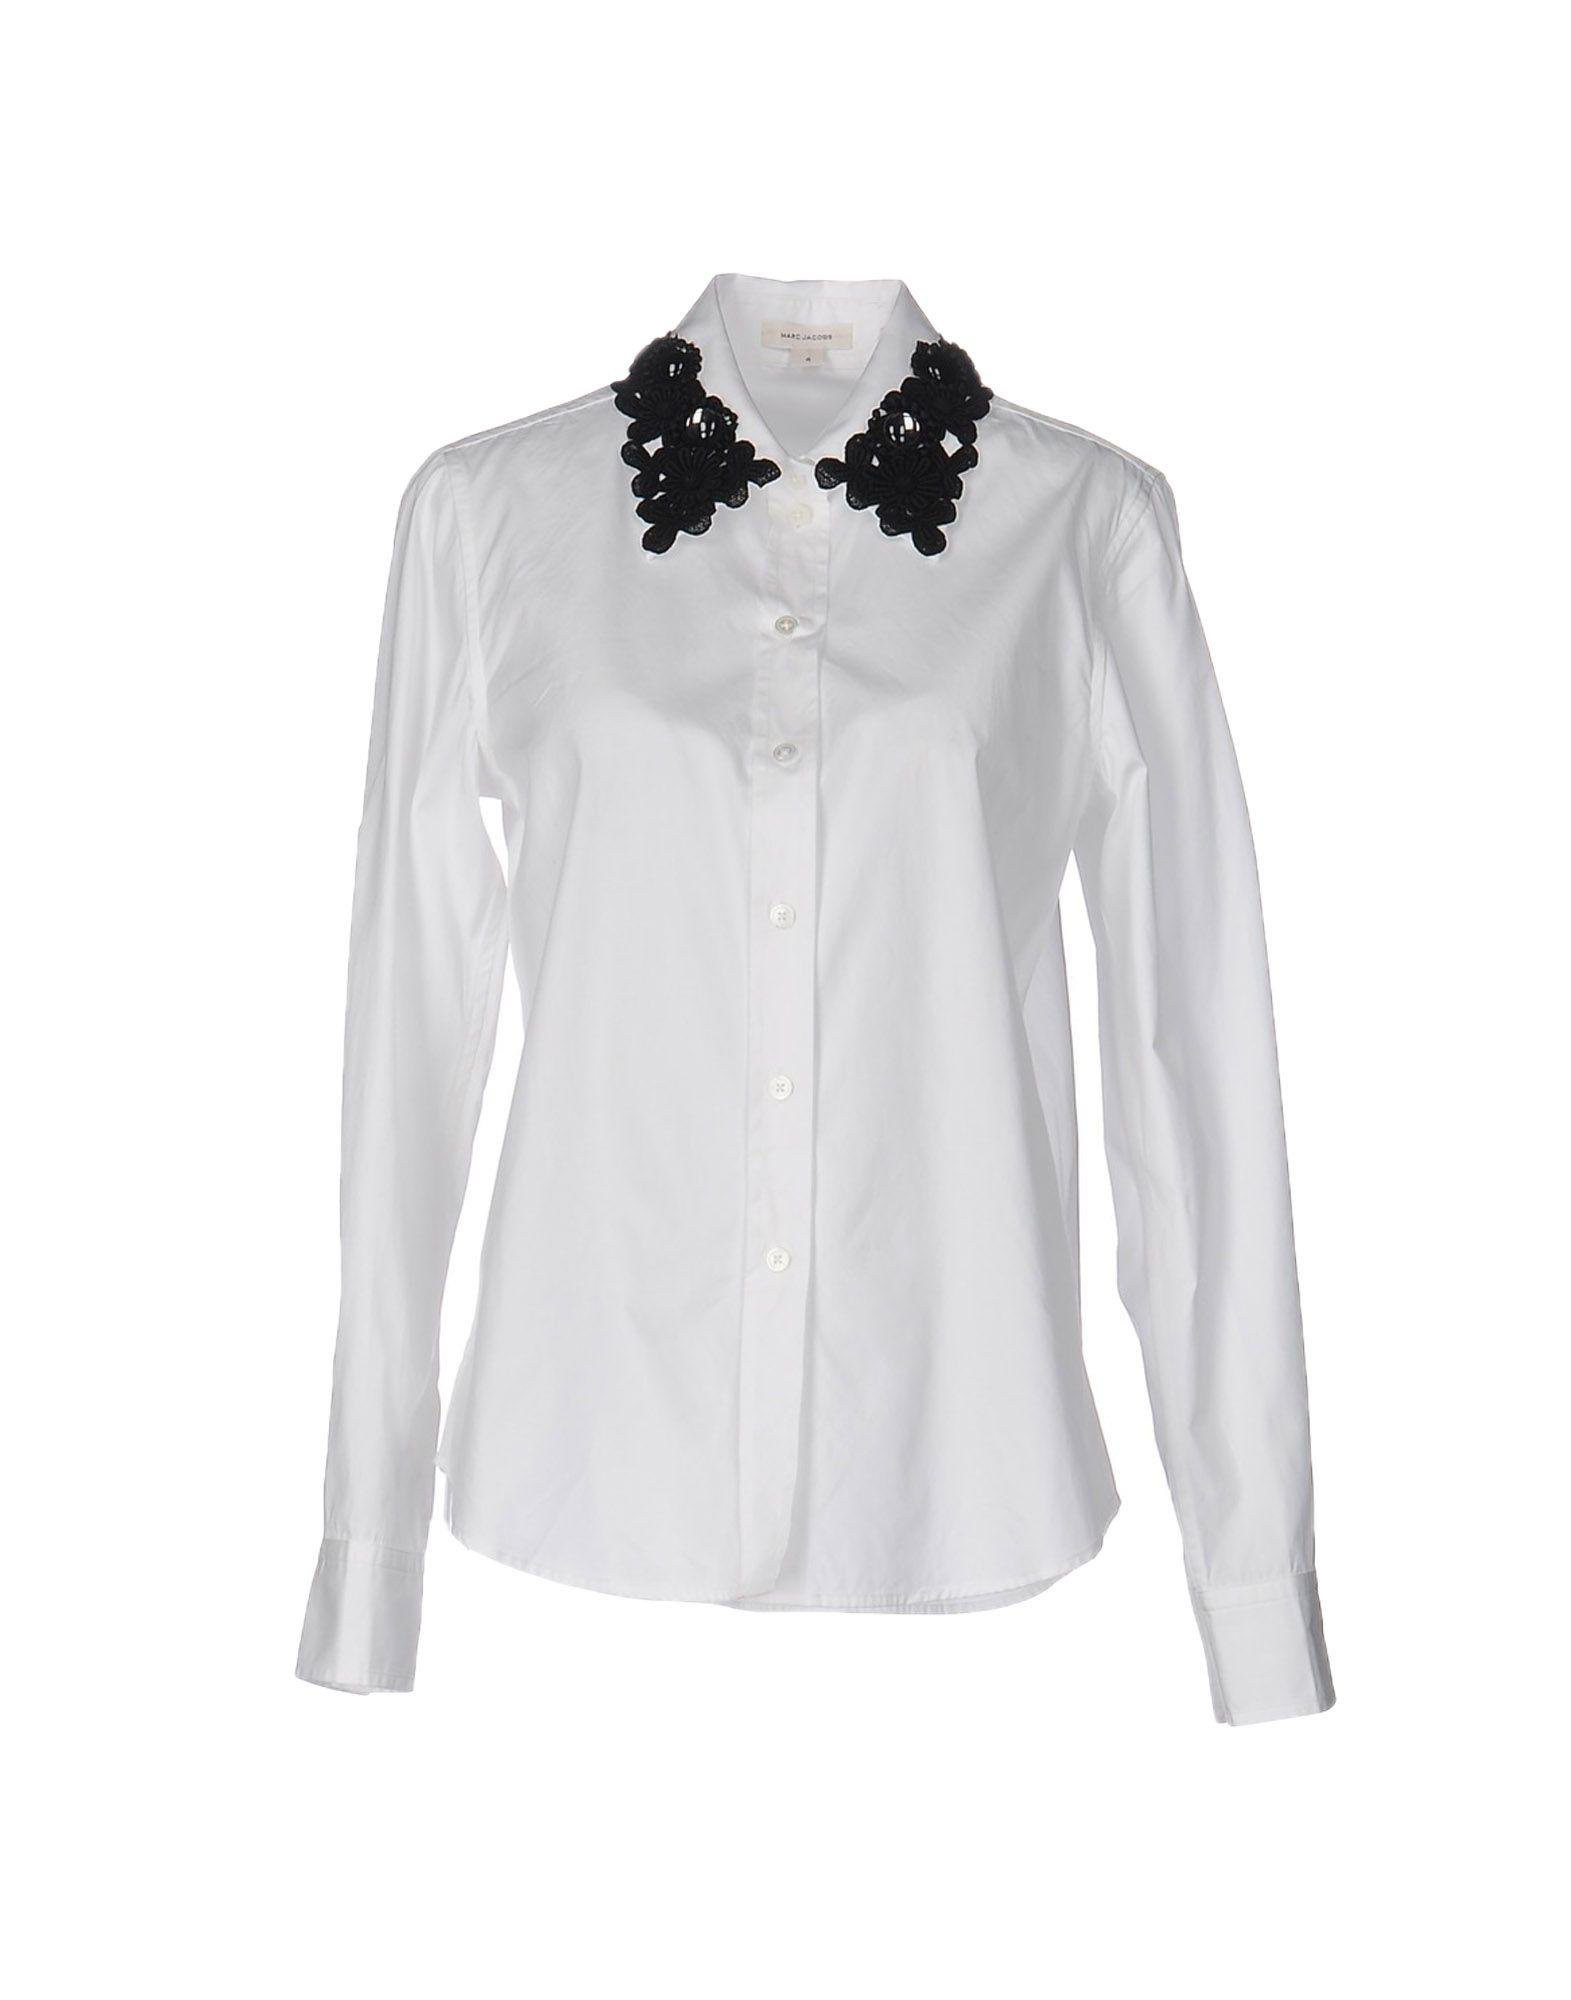 Marc Jacobs Solid Color Shirts & Blouses In Ivory